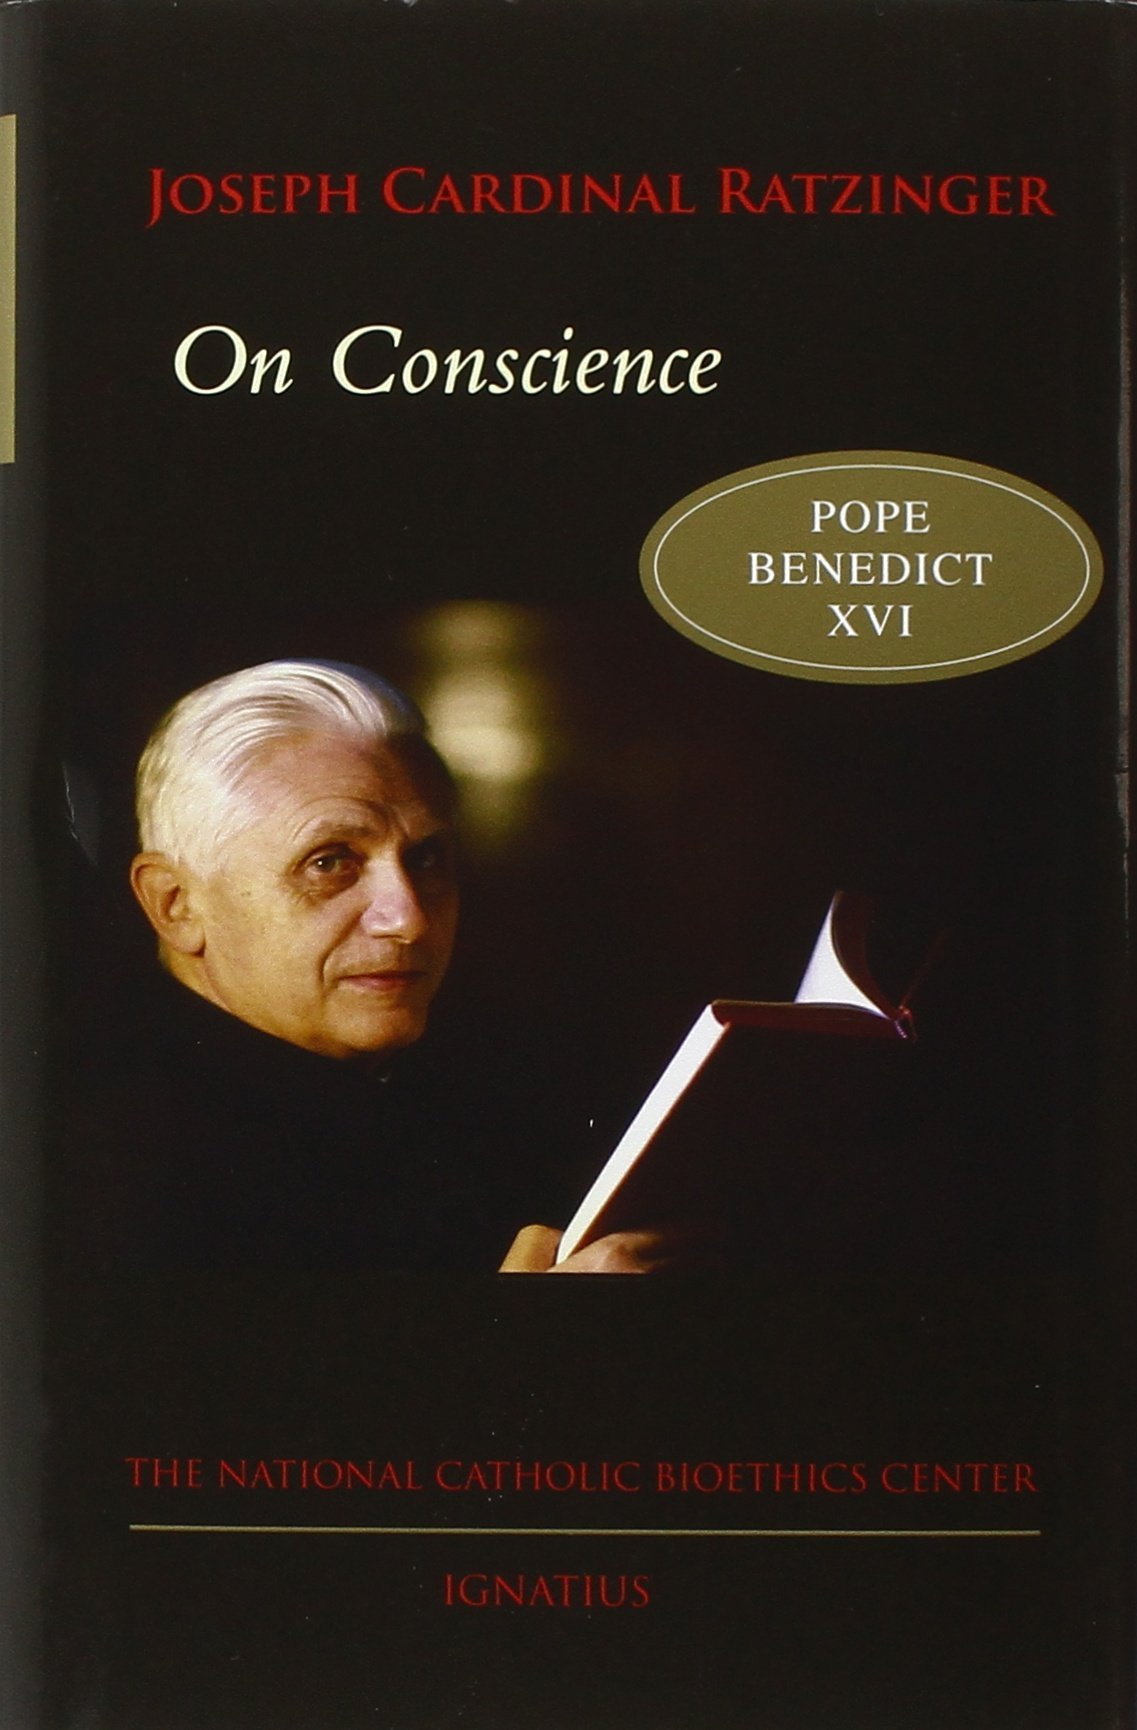 on conscience bioethics culture pope benedict xvi on conscience bioethics culture pope benedict xvi 9781586171605 com books